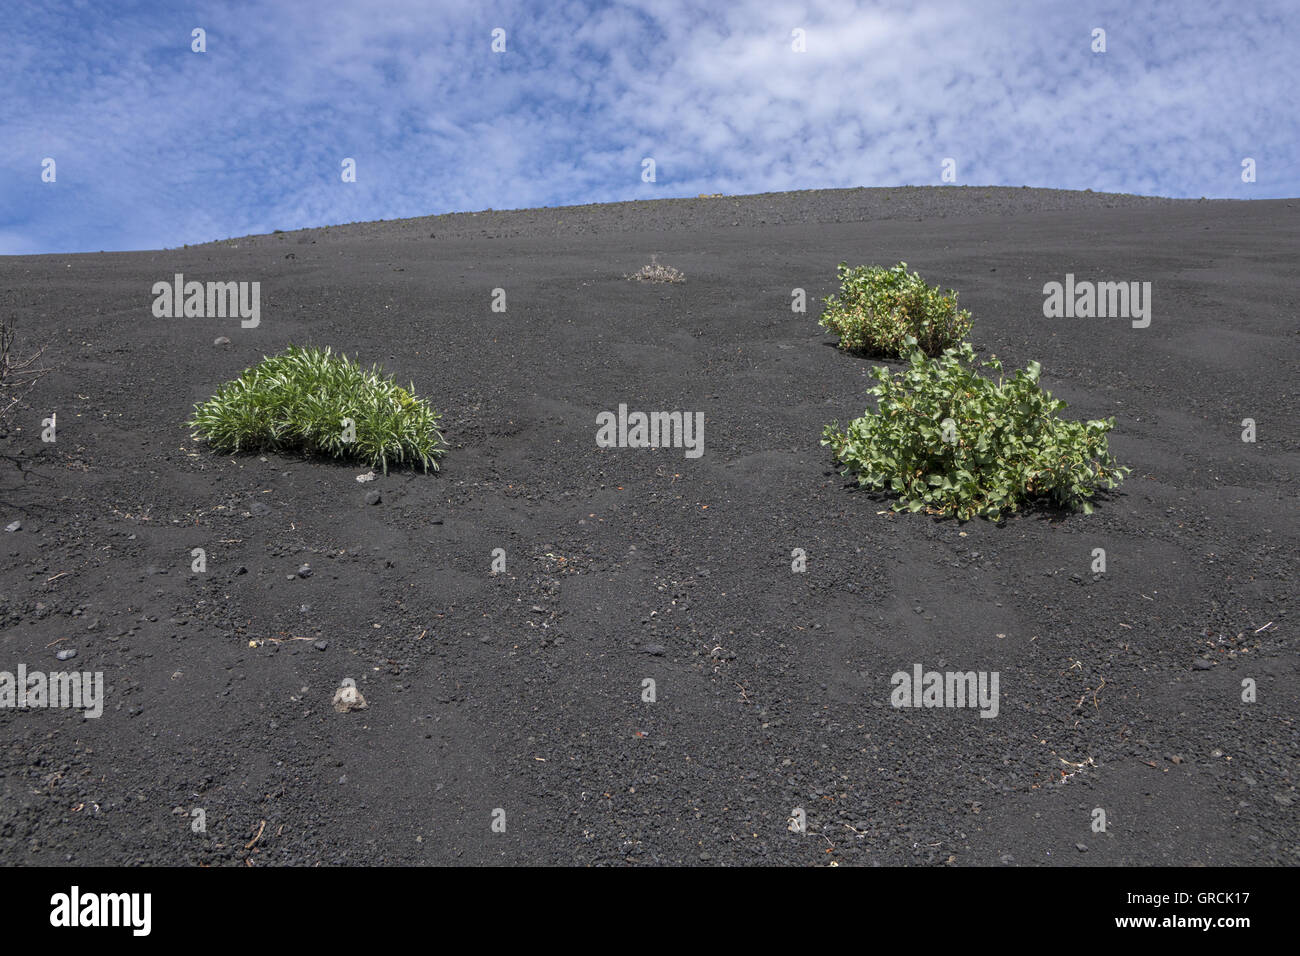 Gentle Slope Of Volcanic Ash, 3 Three Pioneer Plants. In The Back Blue Sky With Cotton Wool Clouds. Volcano San - Stock Image